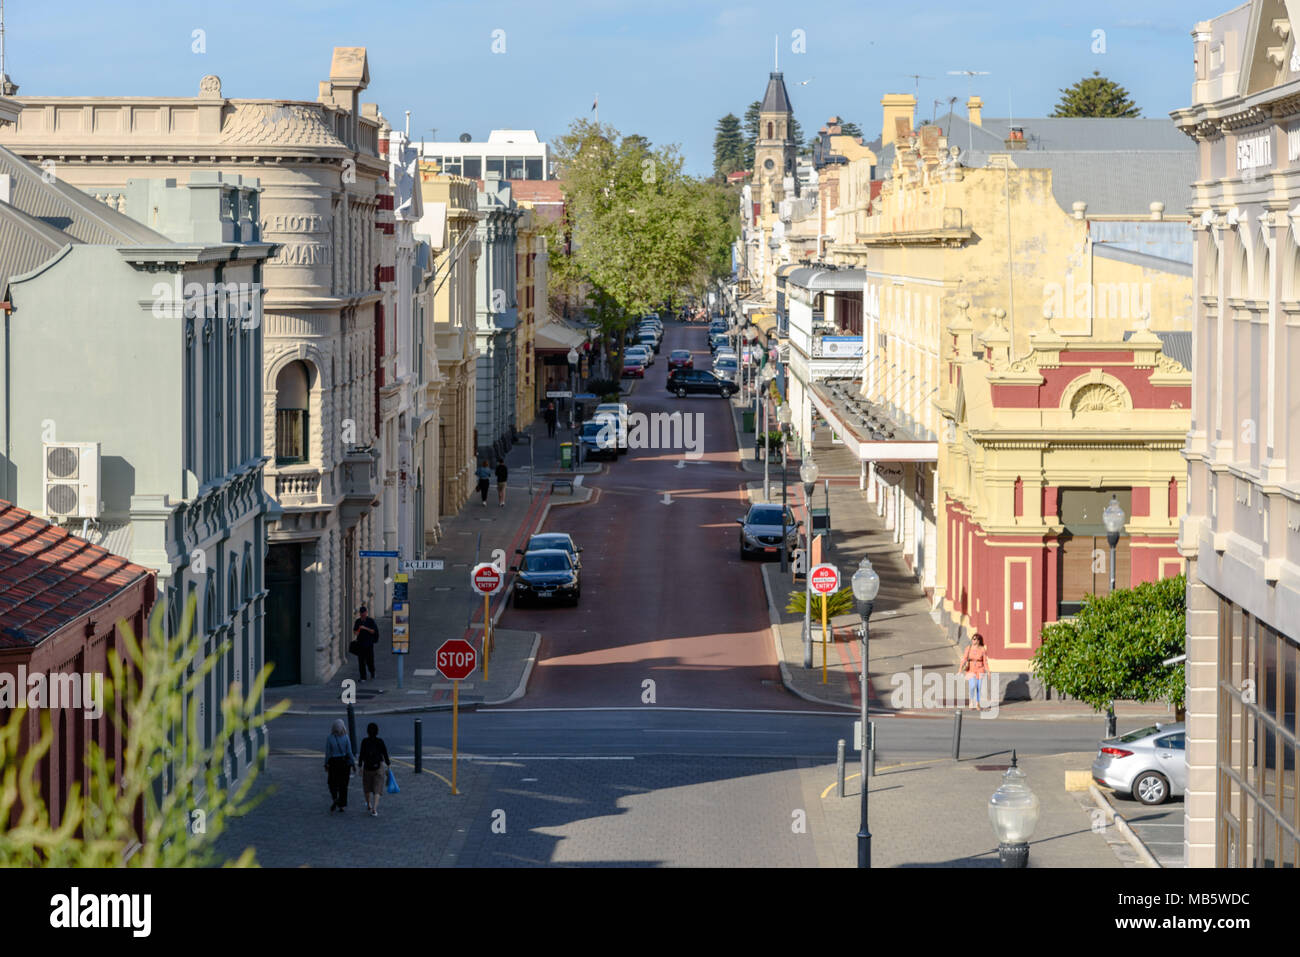 A high angle view of High Street in Fremantle, Western Australia - Stock Image